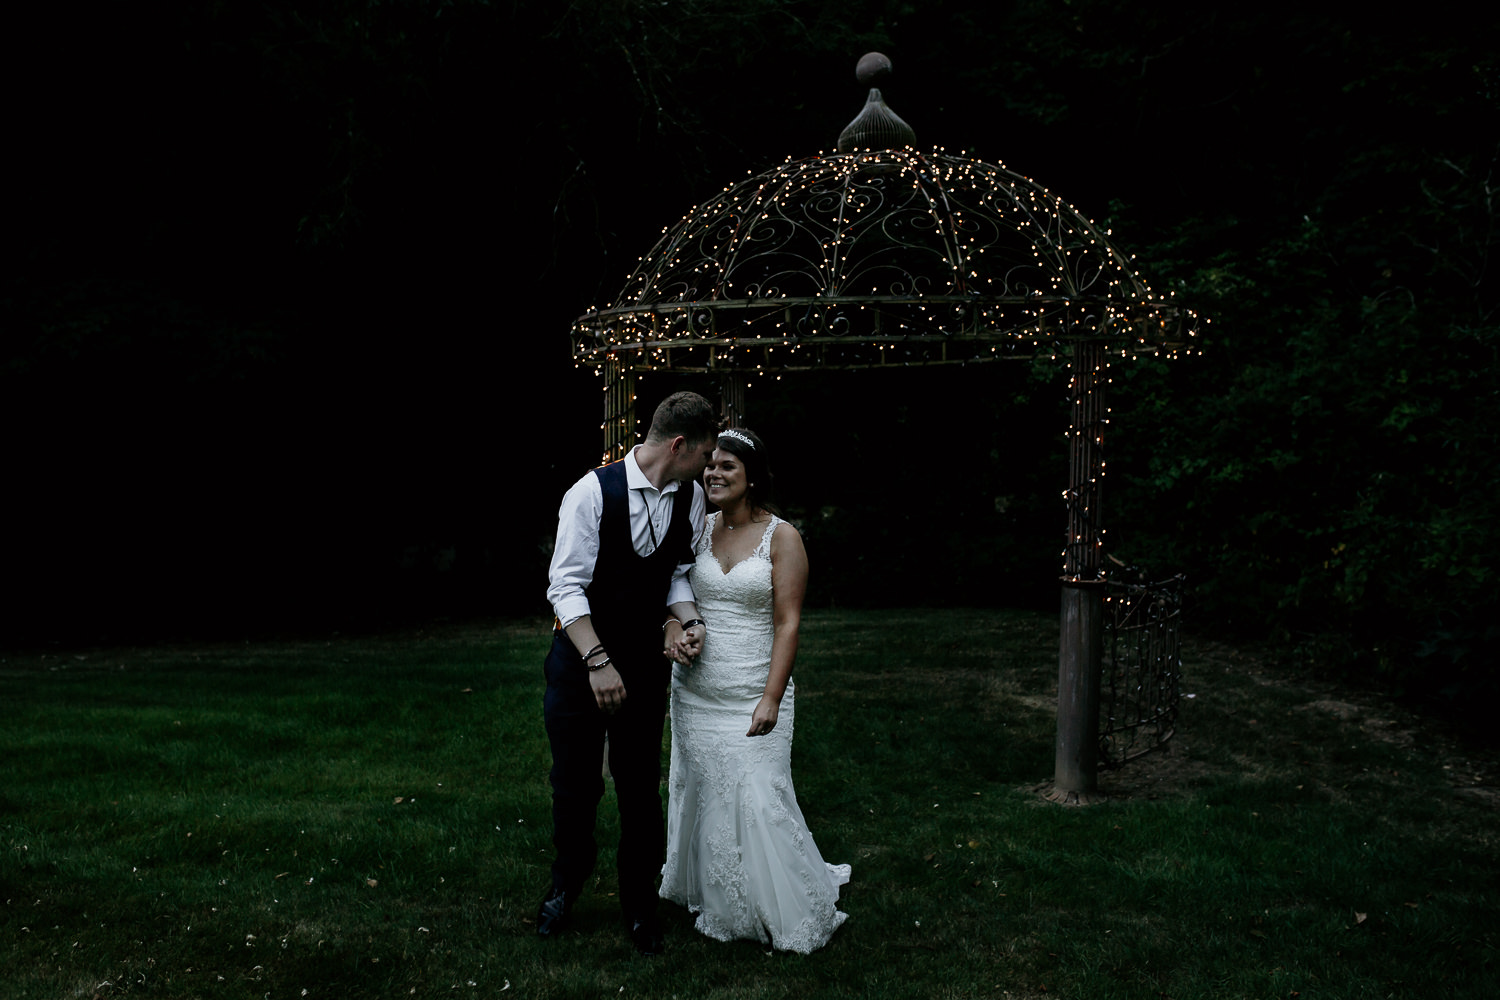 photo of groom looking back at bride outdoors near fairy lights